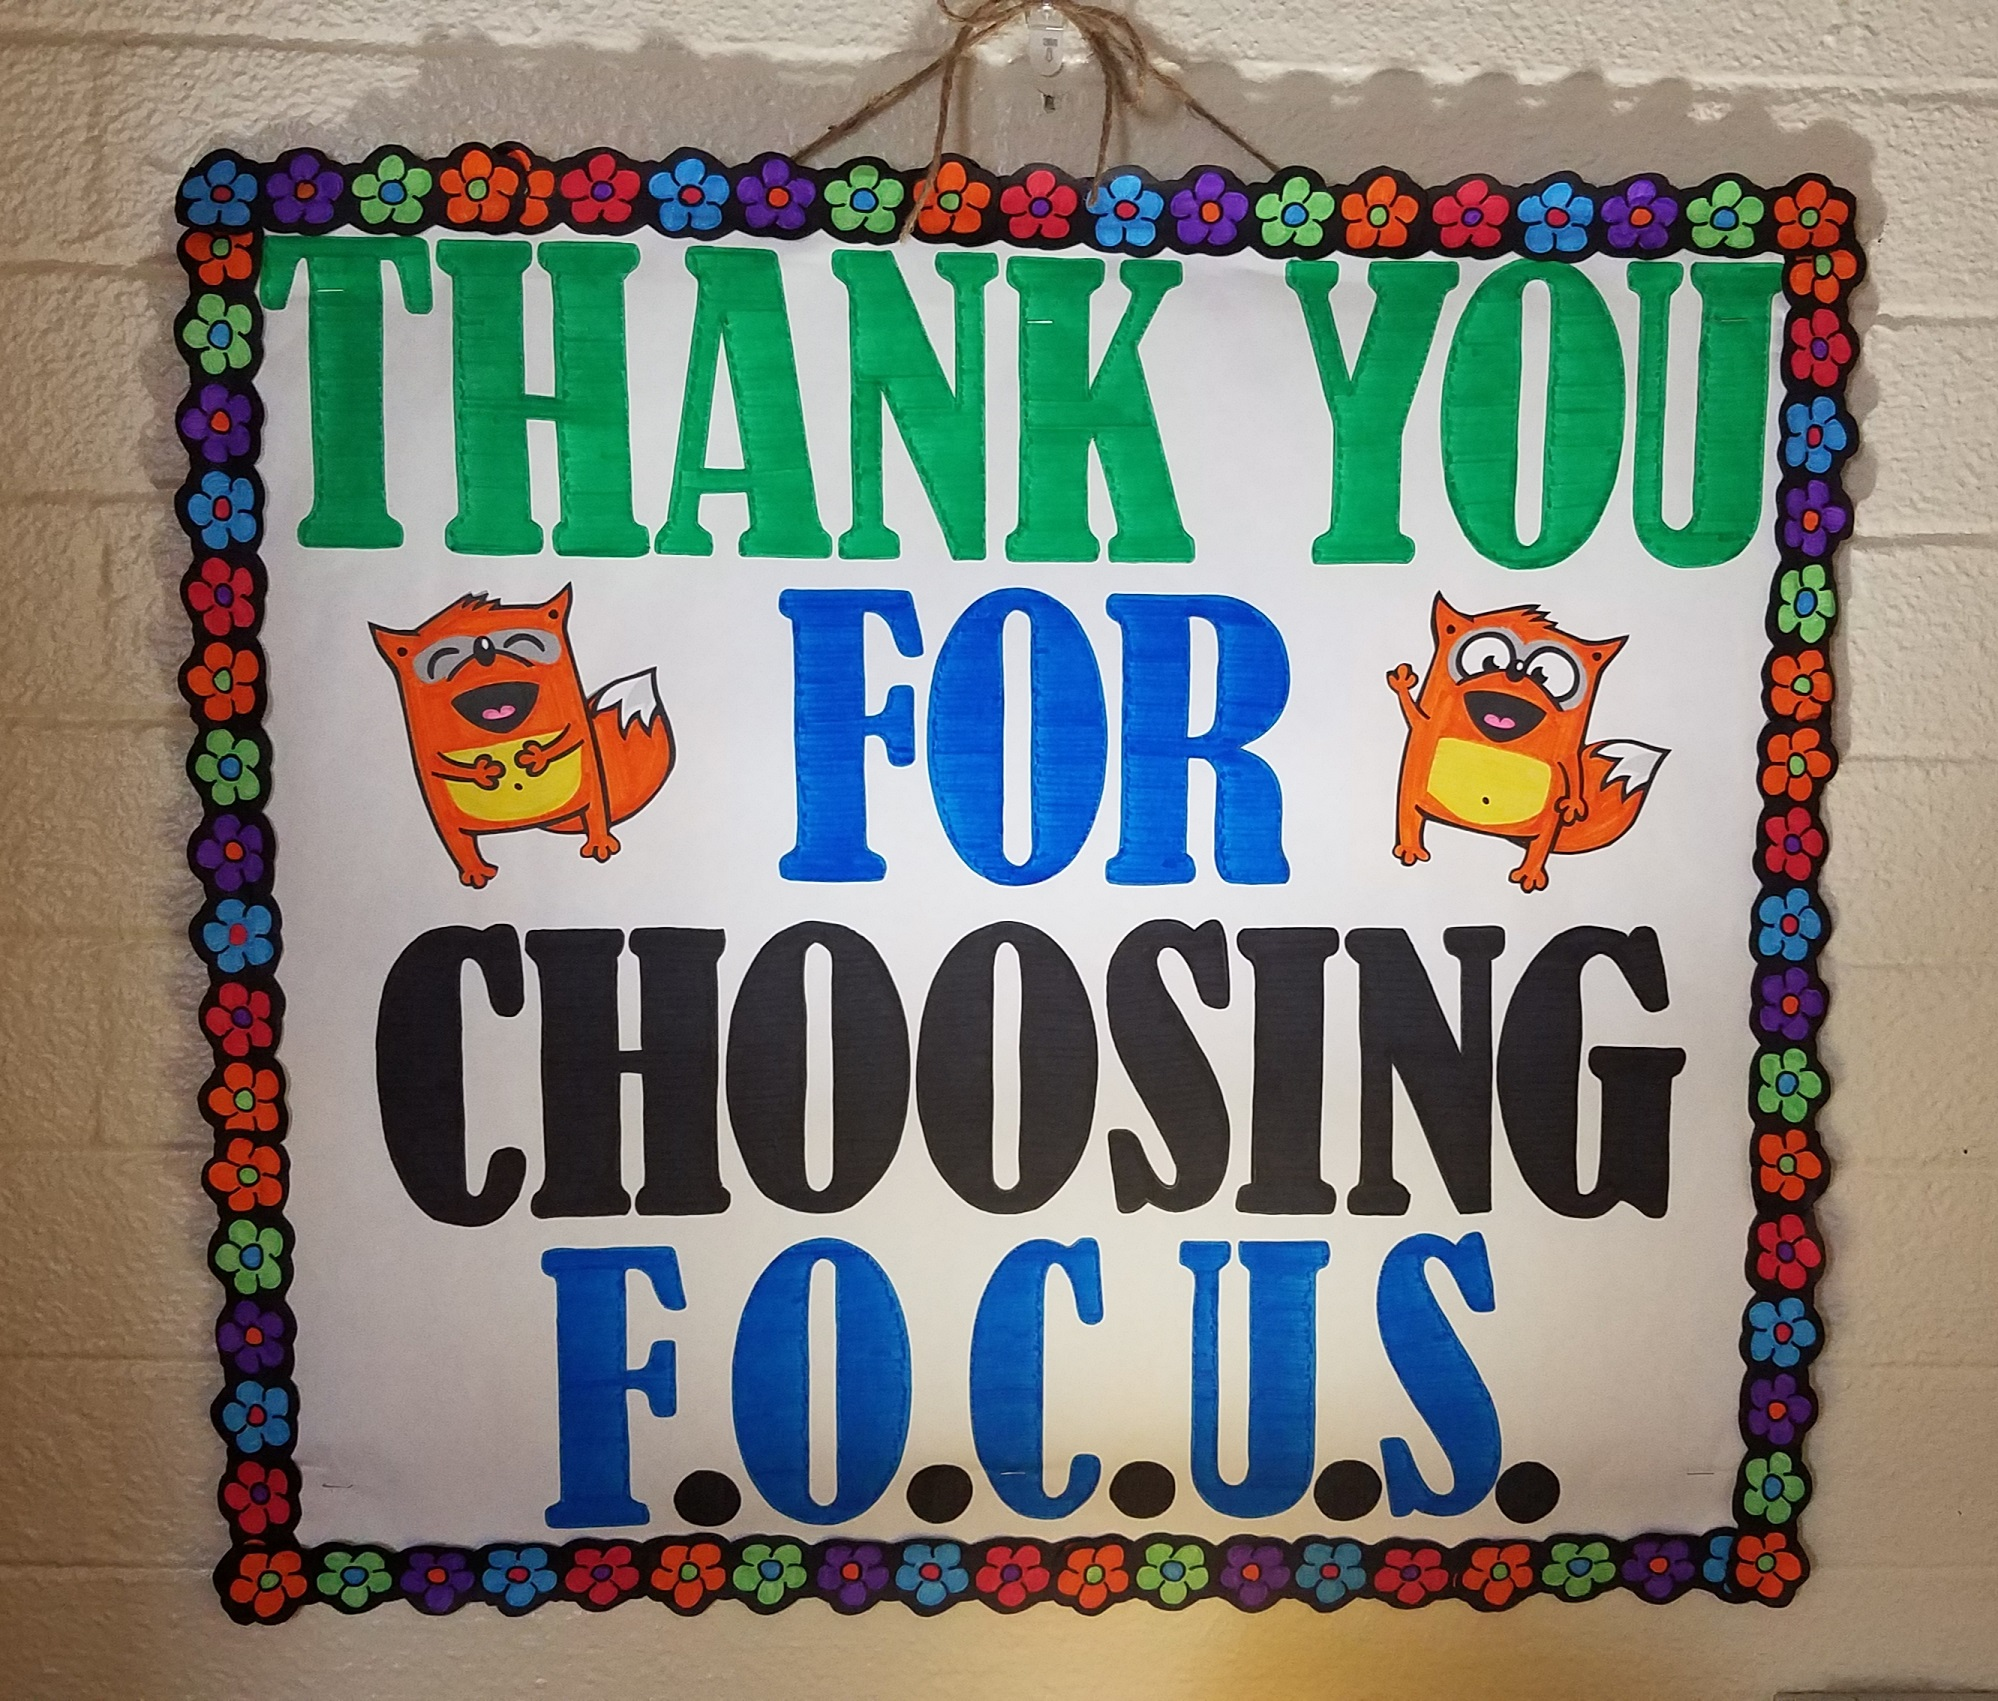 Thank you for choosing FOCUS